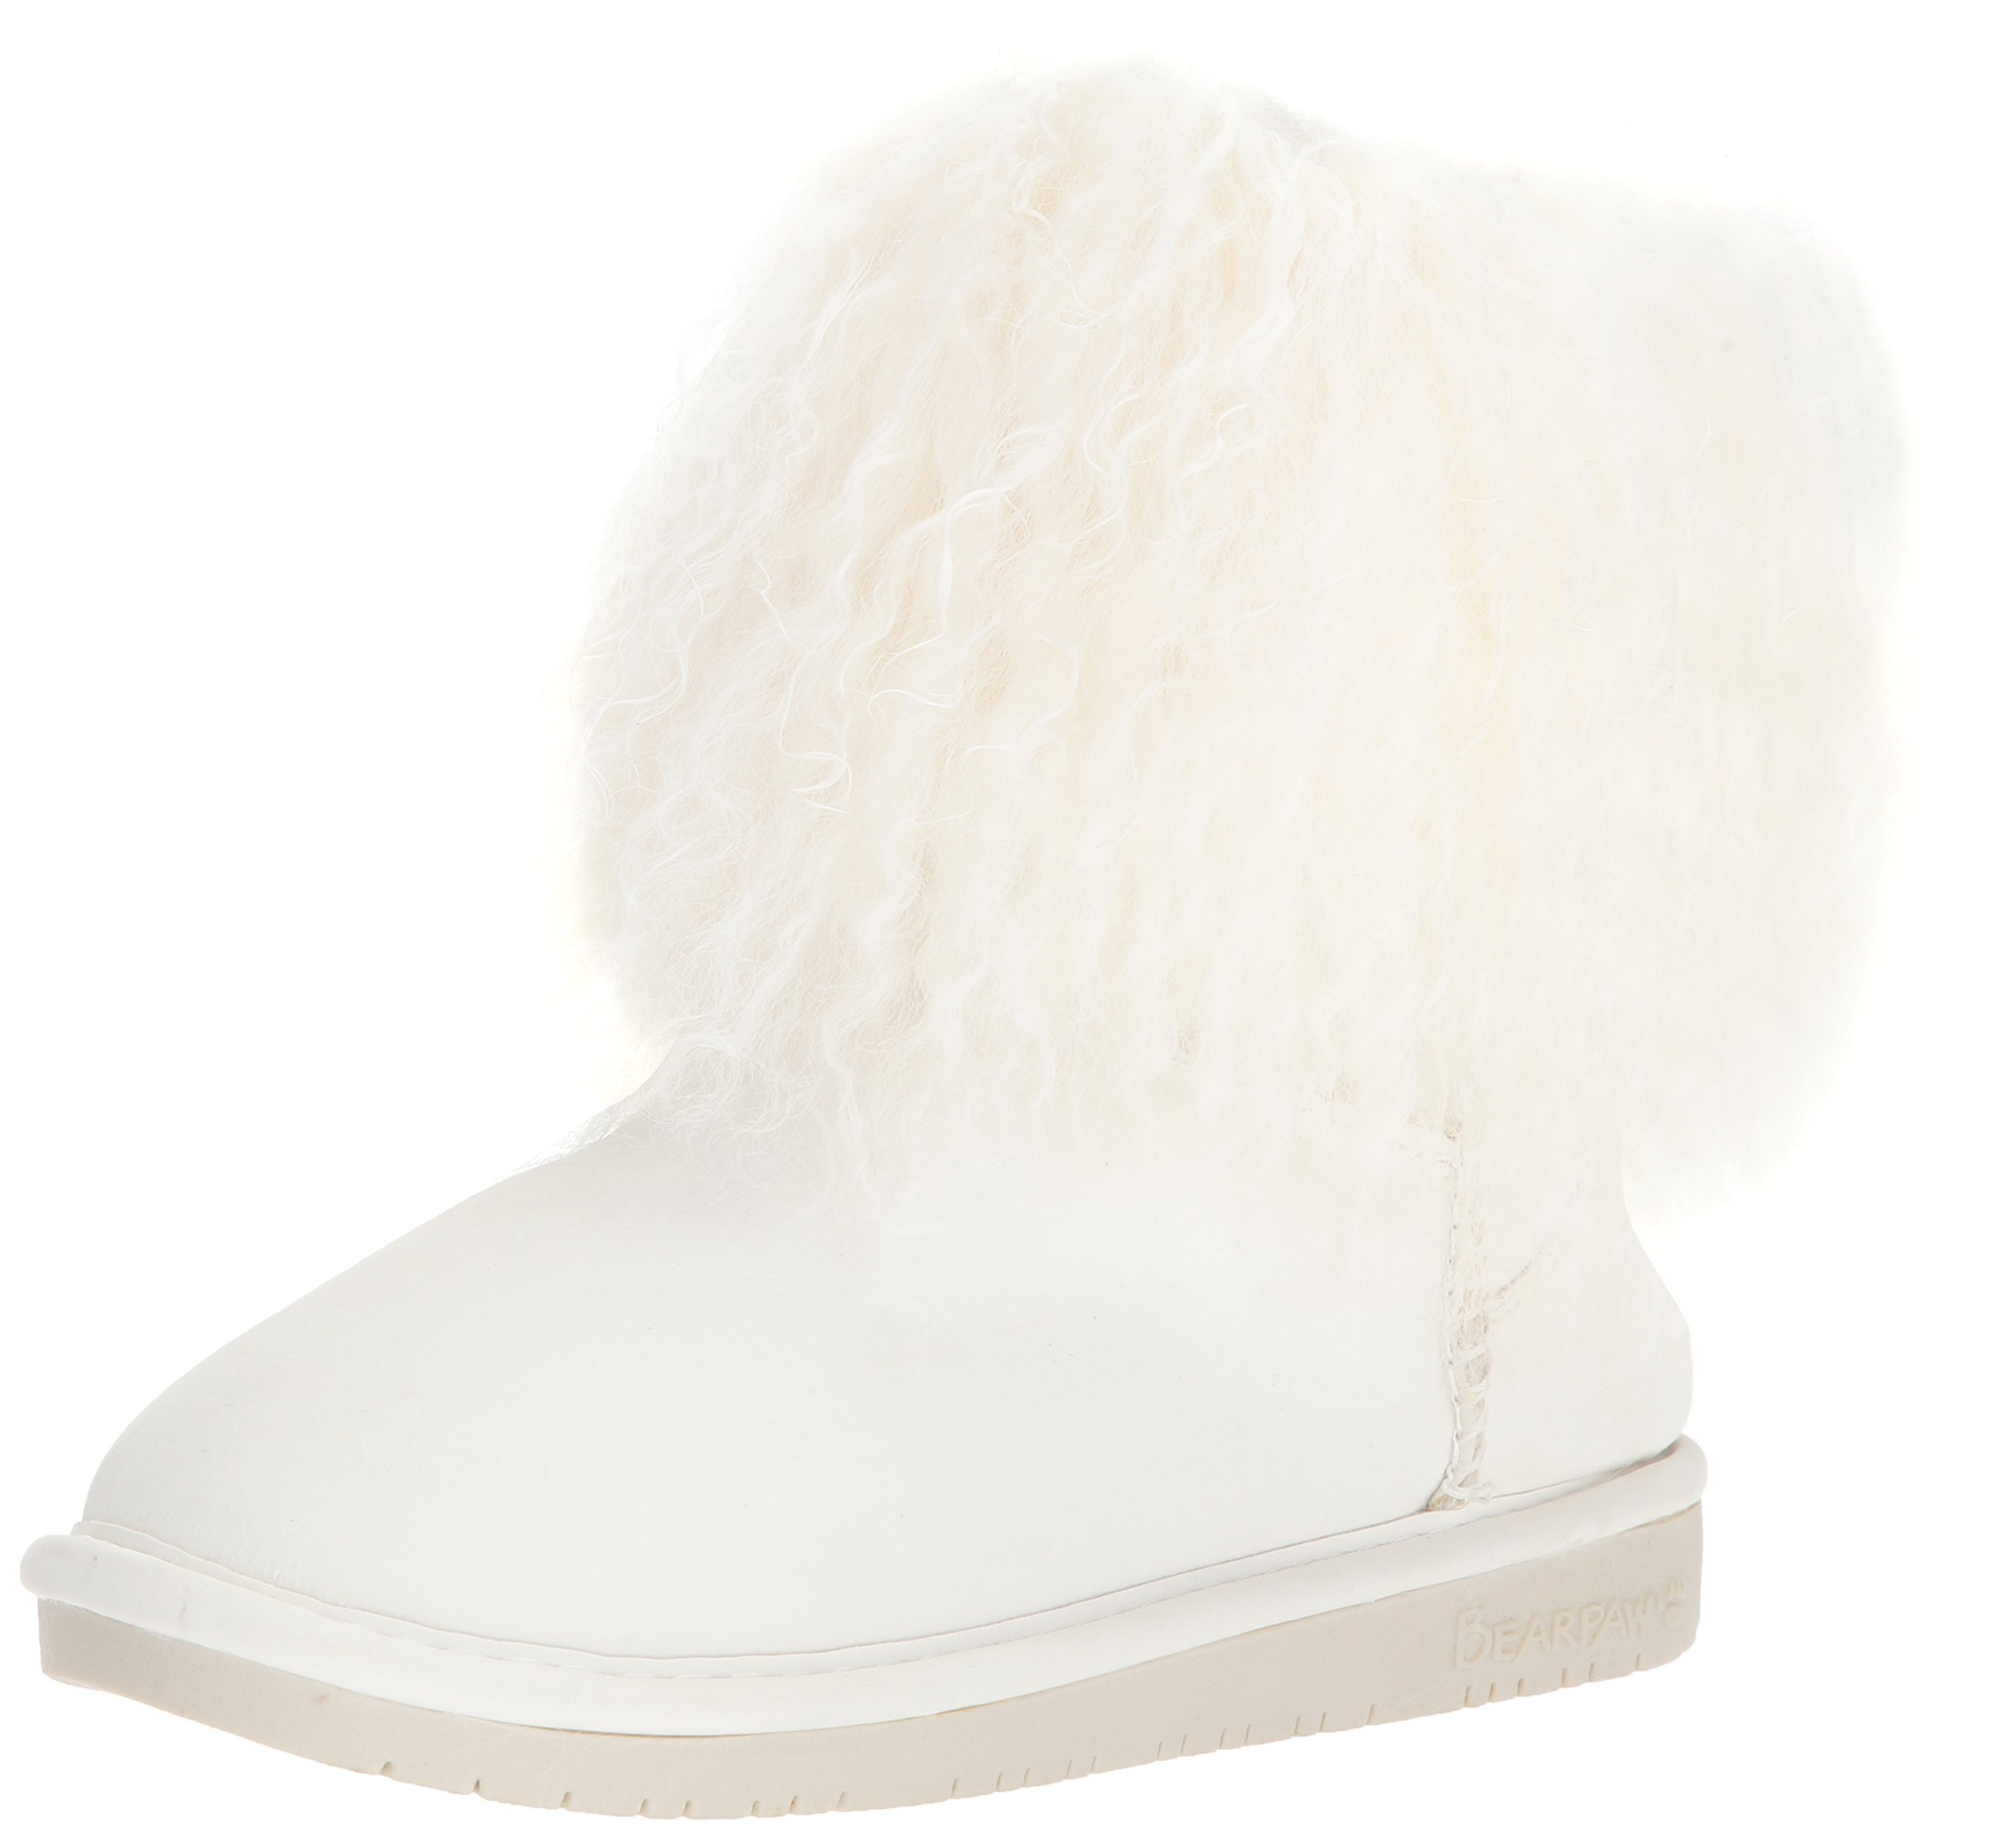 Bearpaw Womens Boo Leather Closed Toe Mid-Calf Fashion Boots, White, Size 10.0